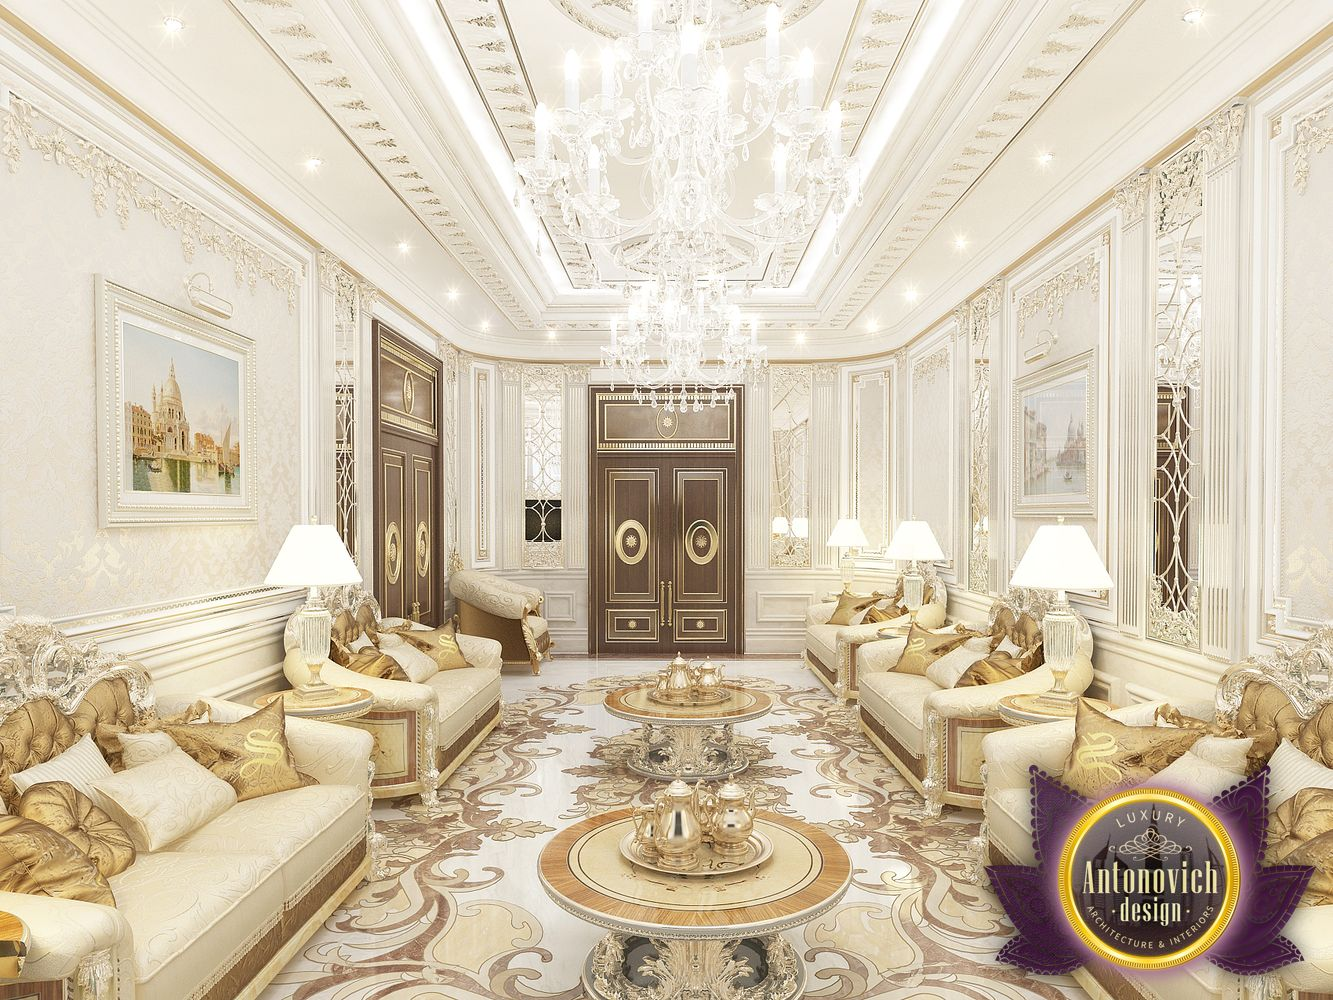 Luxury antonovich design uae living room interior design for House get dizain